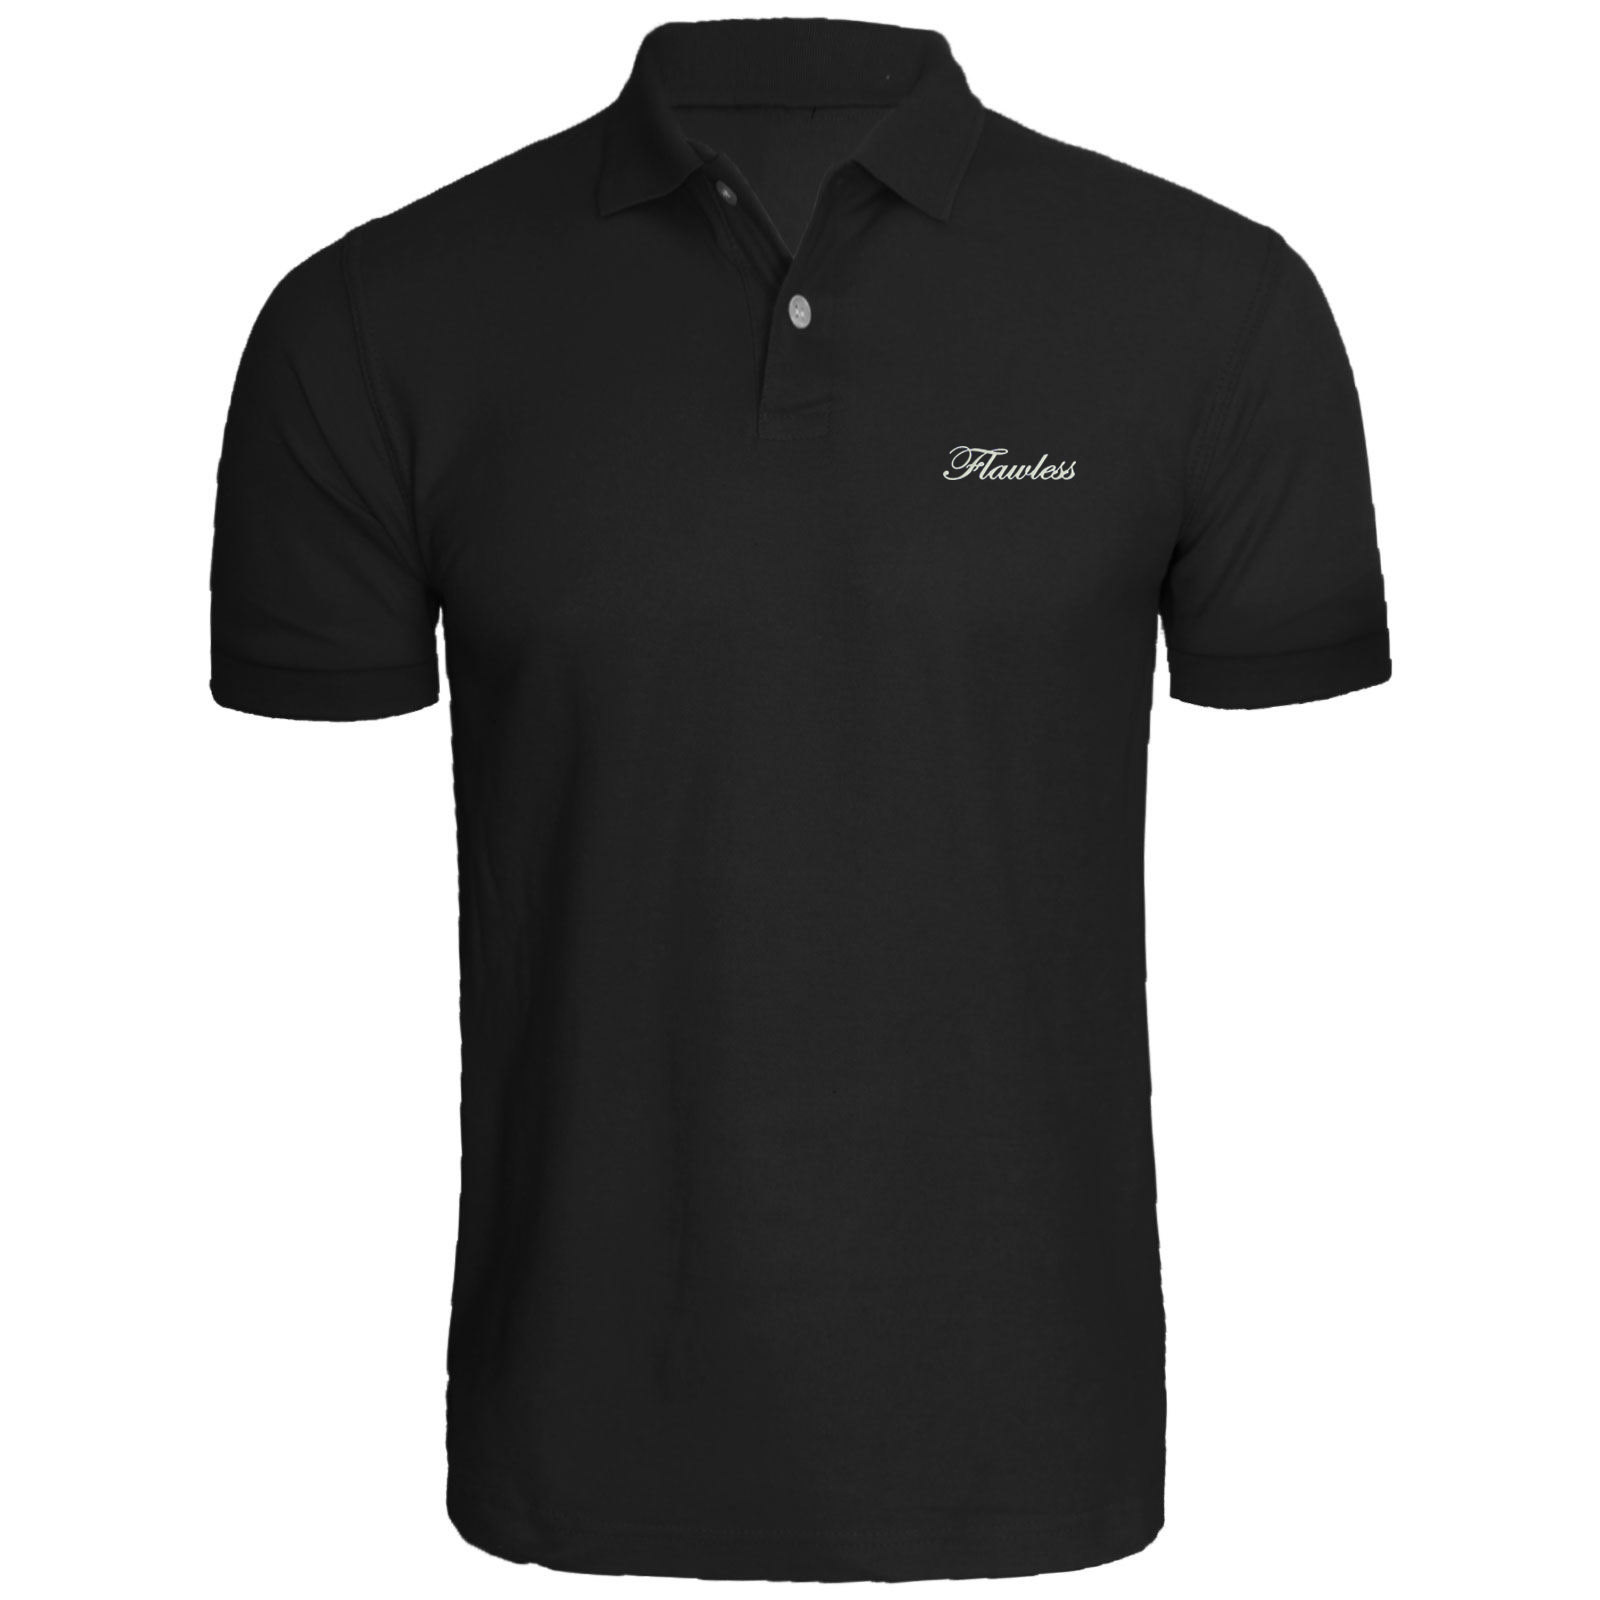 Mens Flawless Embroidery   Polo   Shirts